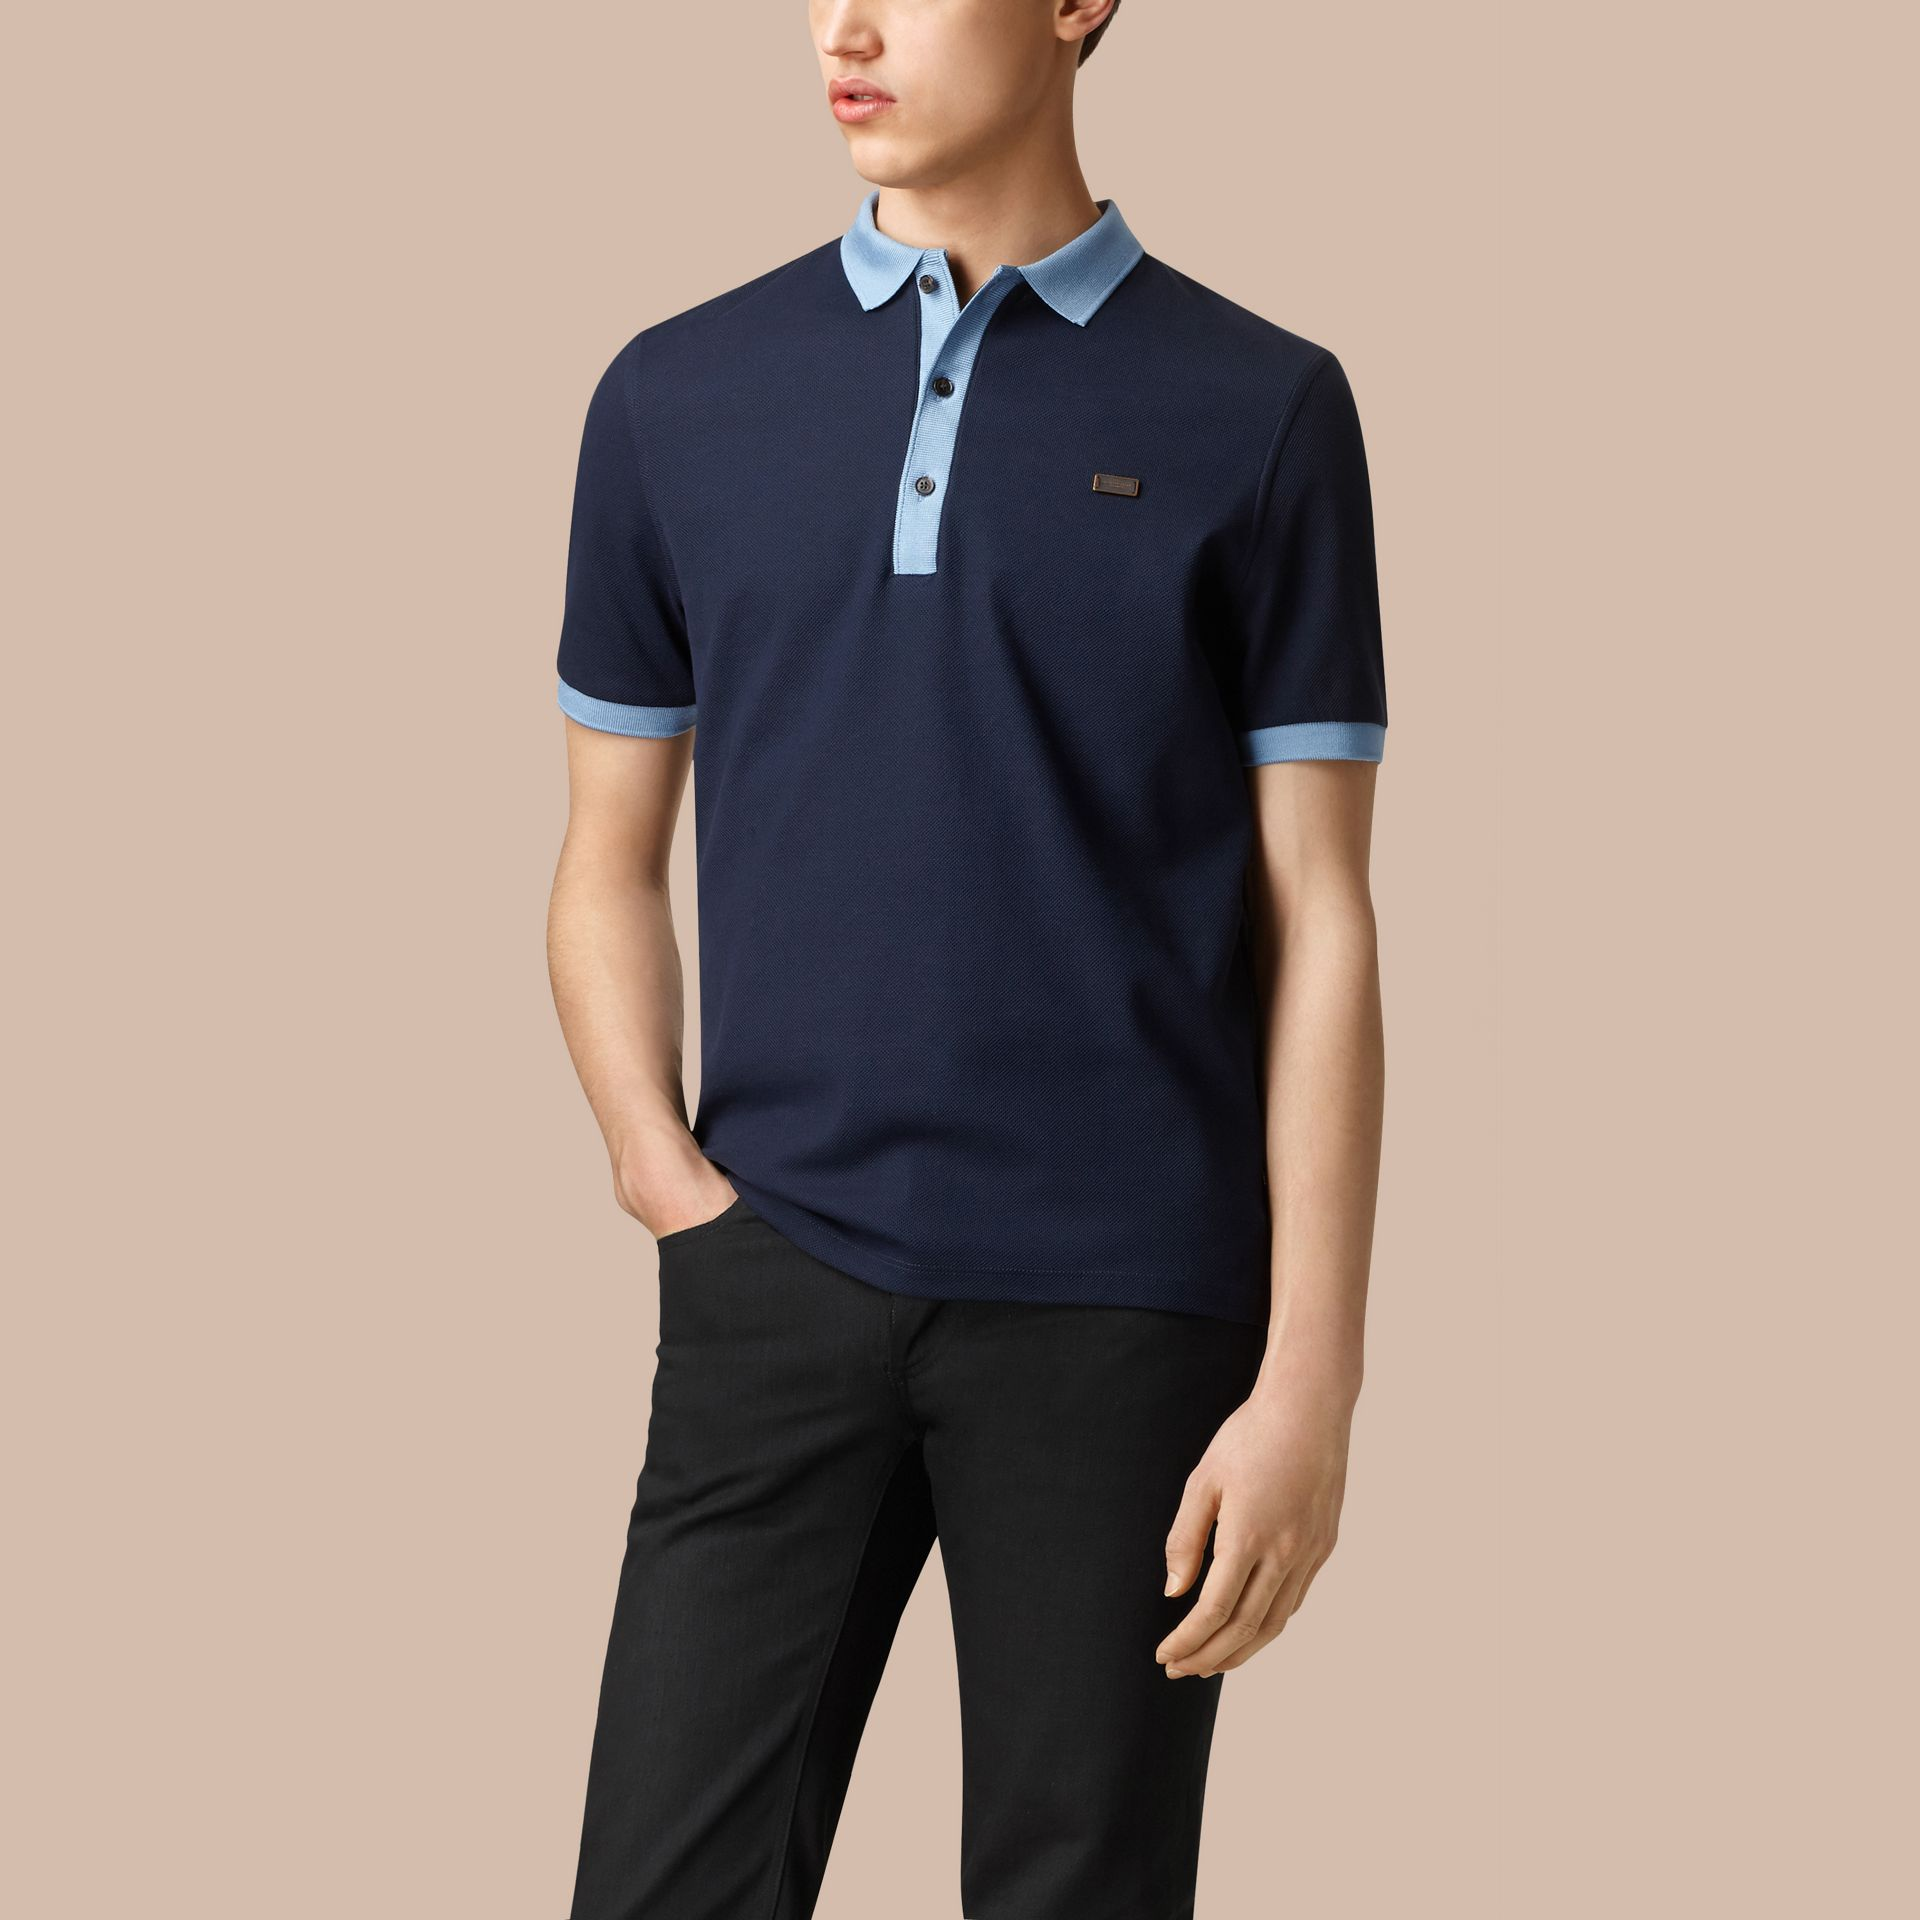 Navy/pale blue Mercerised Cotton Polo Shirt Navy/pale Blue - gallery image 3